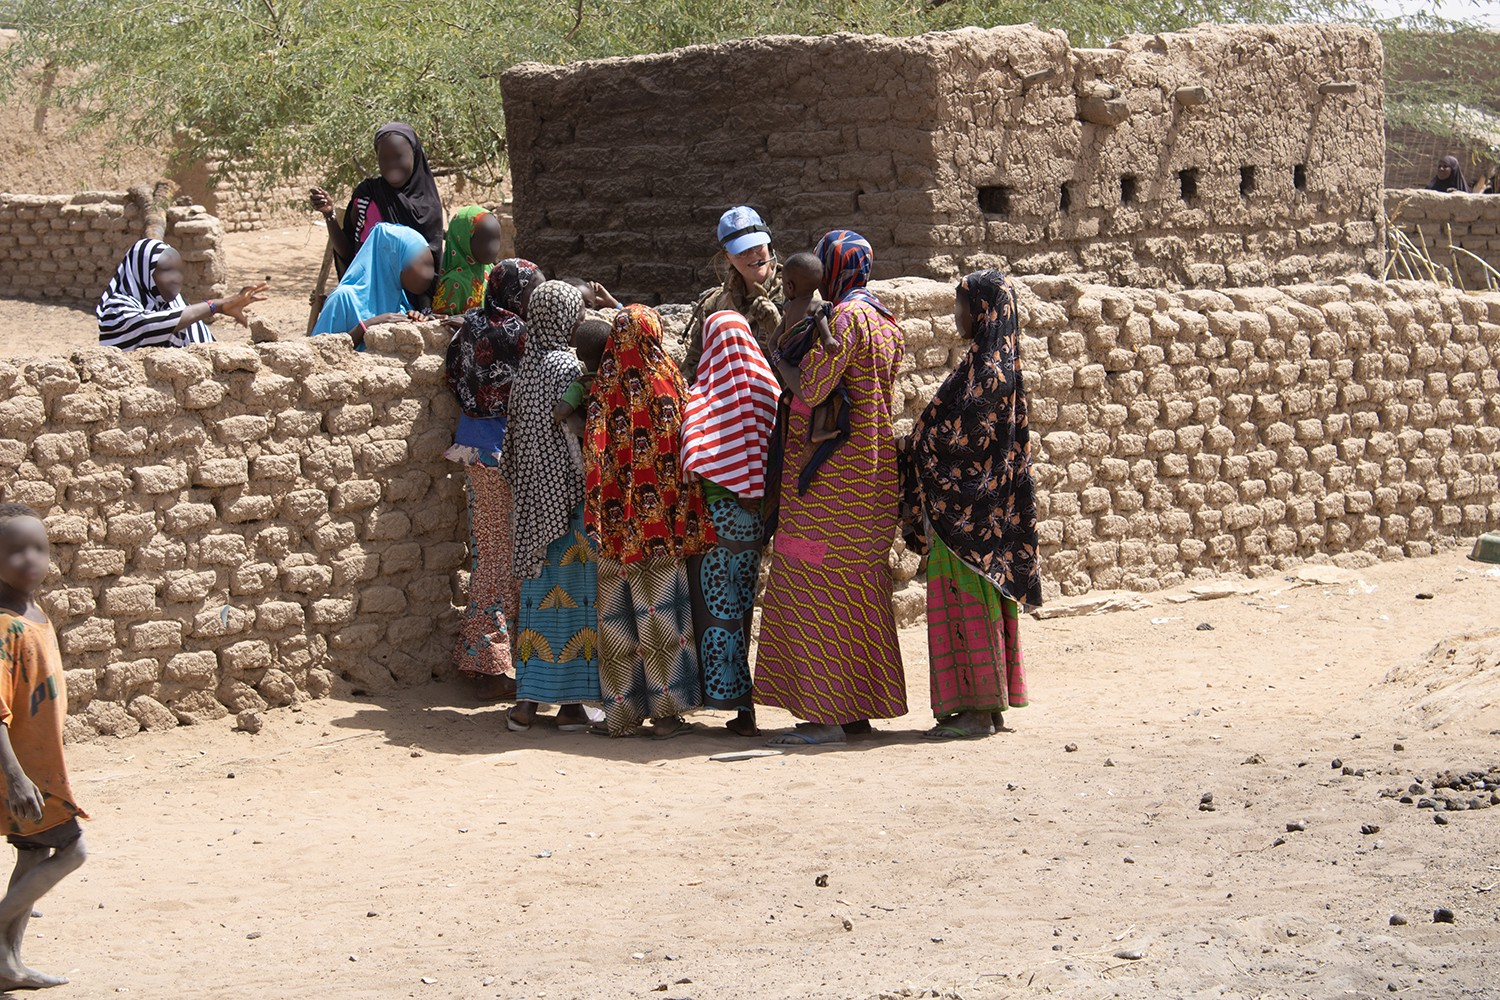 A British peacekeeper talk with locals while out on patrol in Mali.